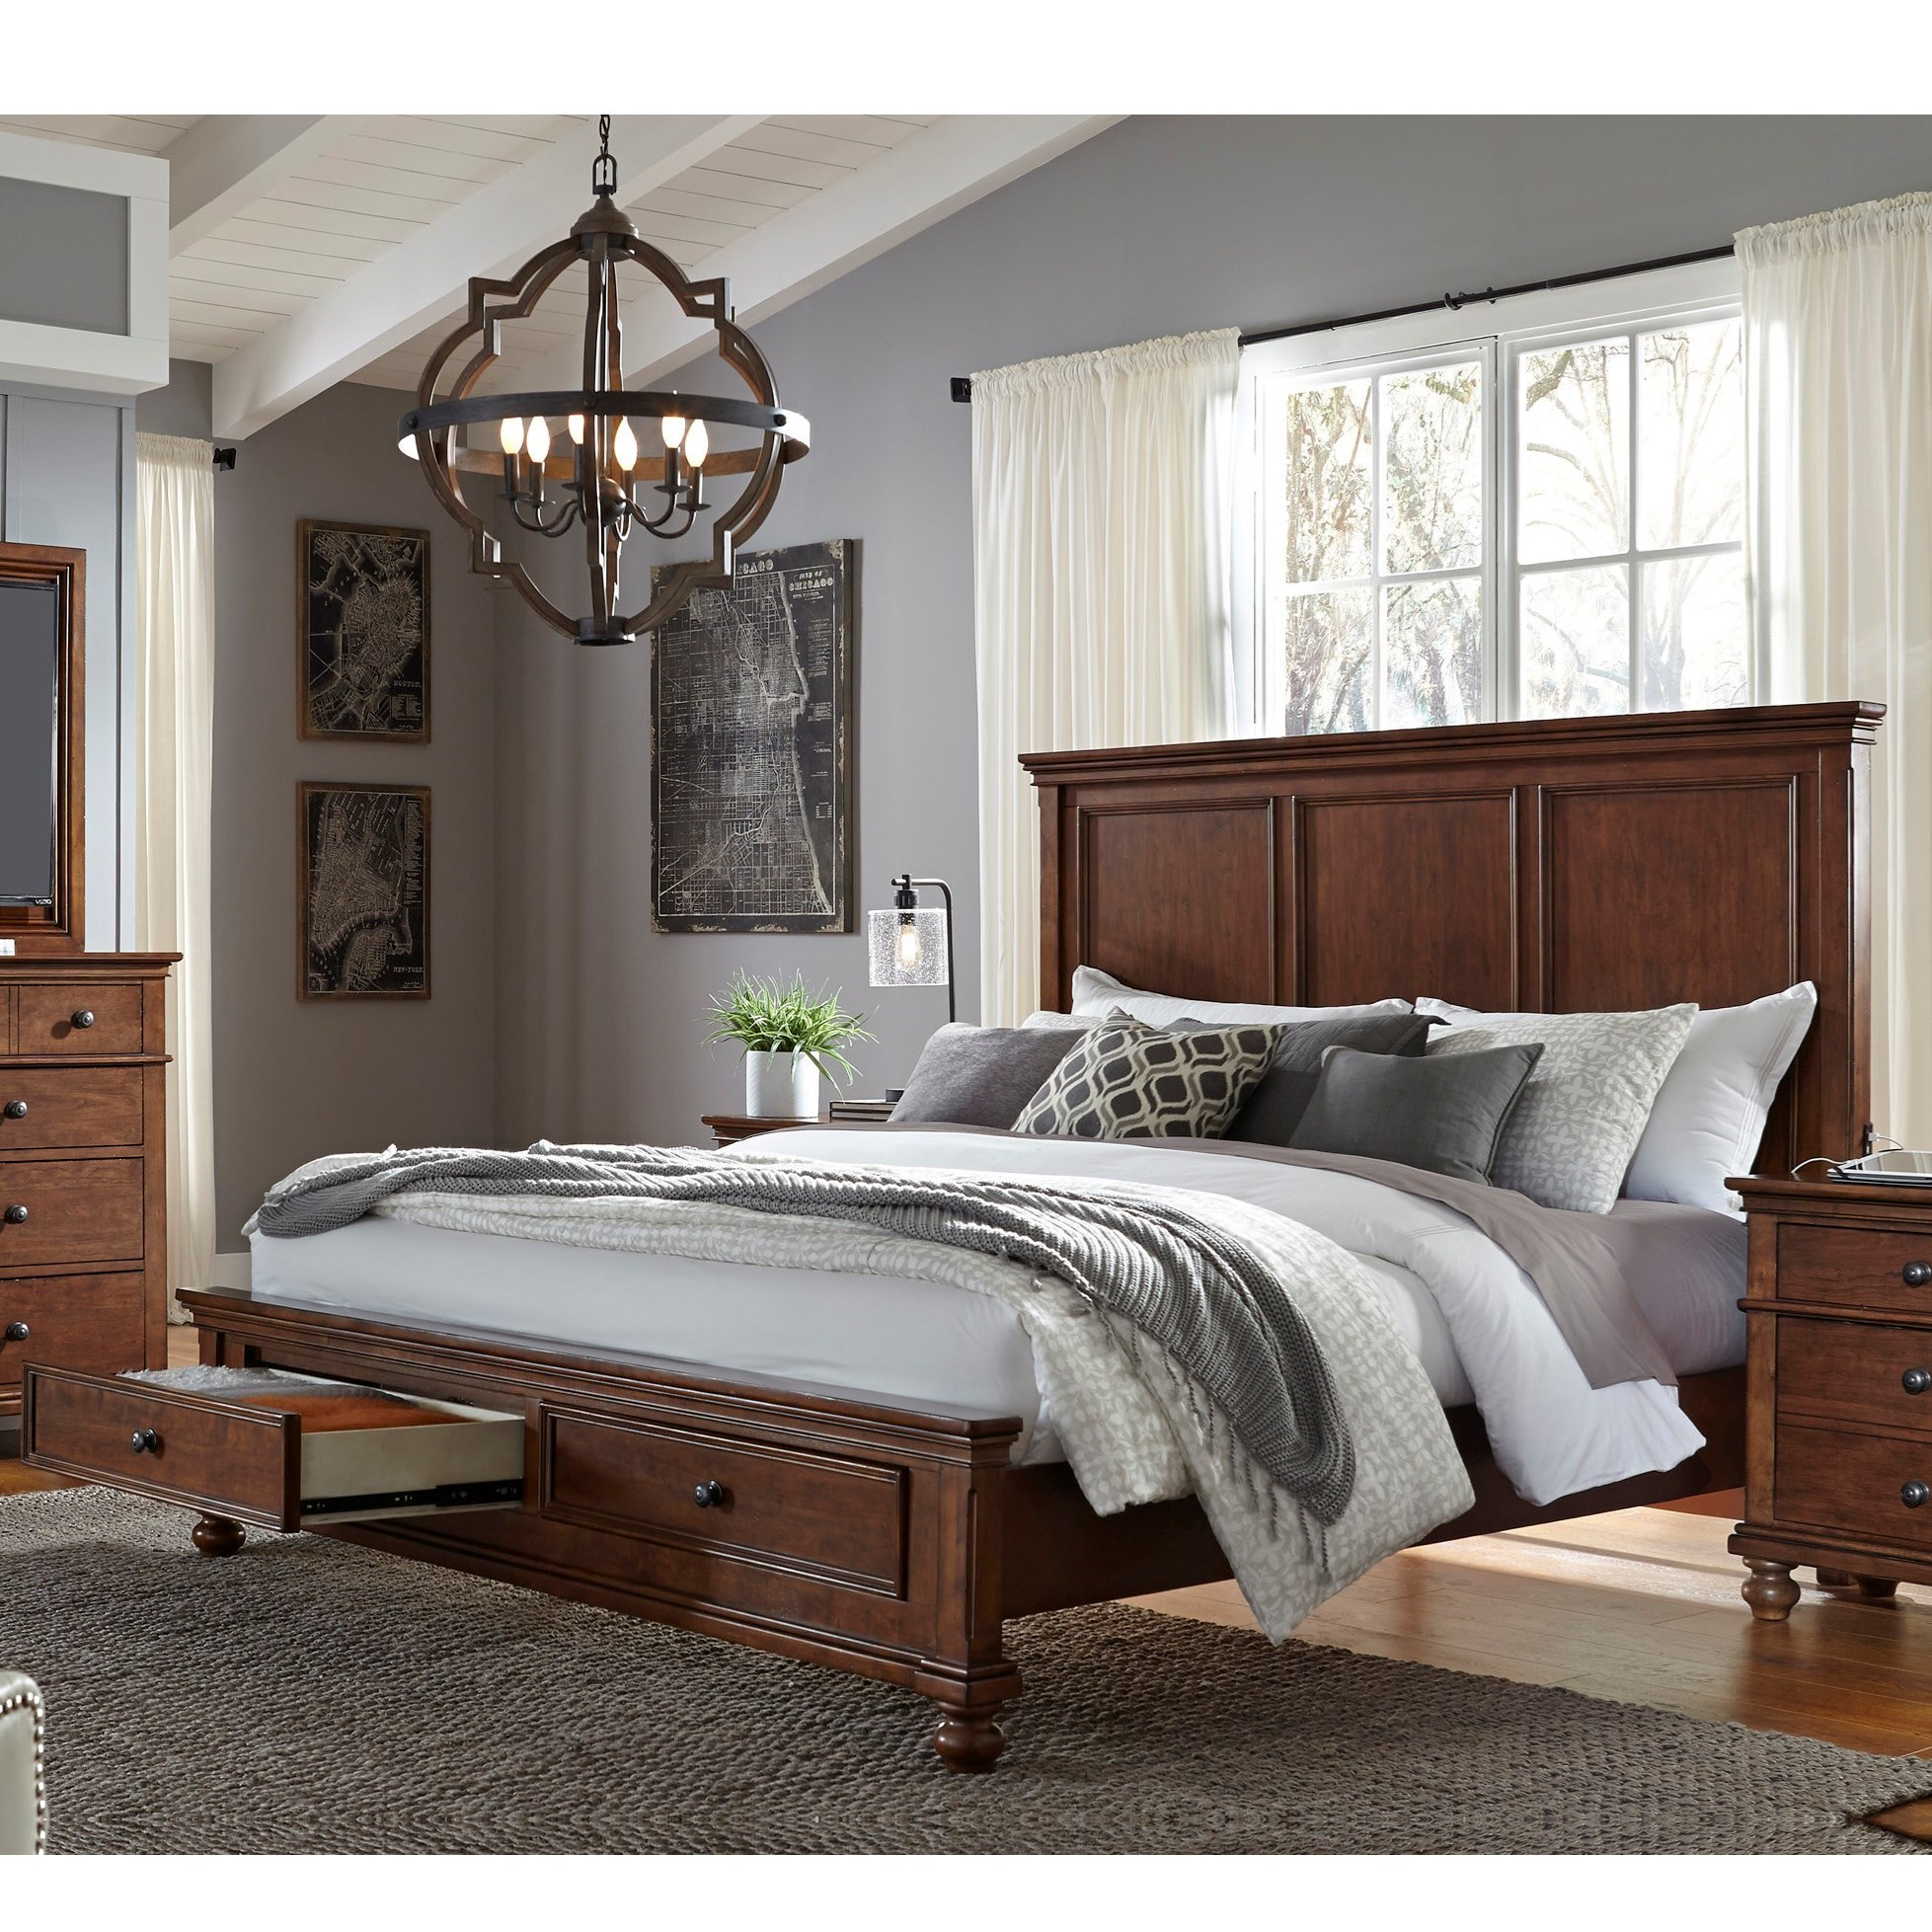 Aspenhome Oxford King Storage Bed - Item Number: I07-415+407D+406-WBR